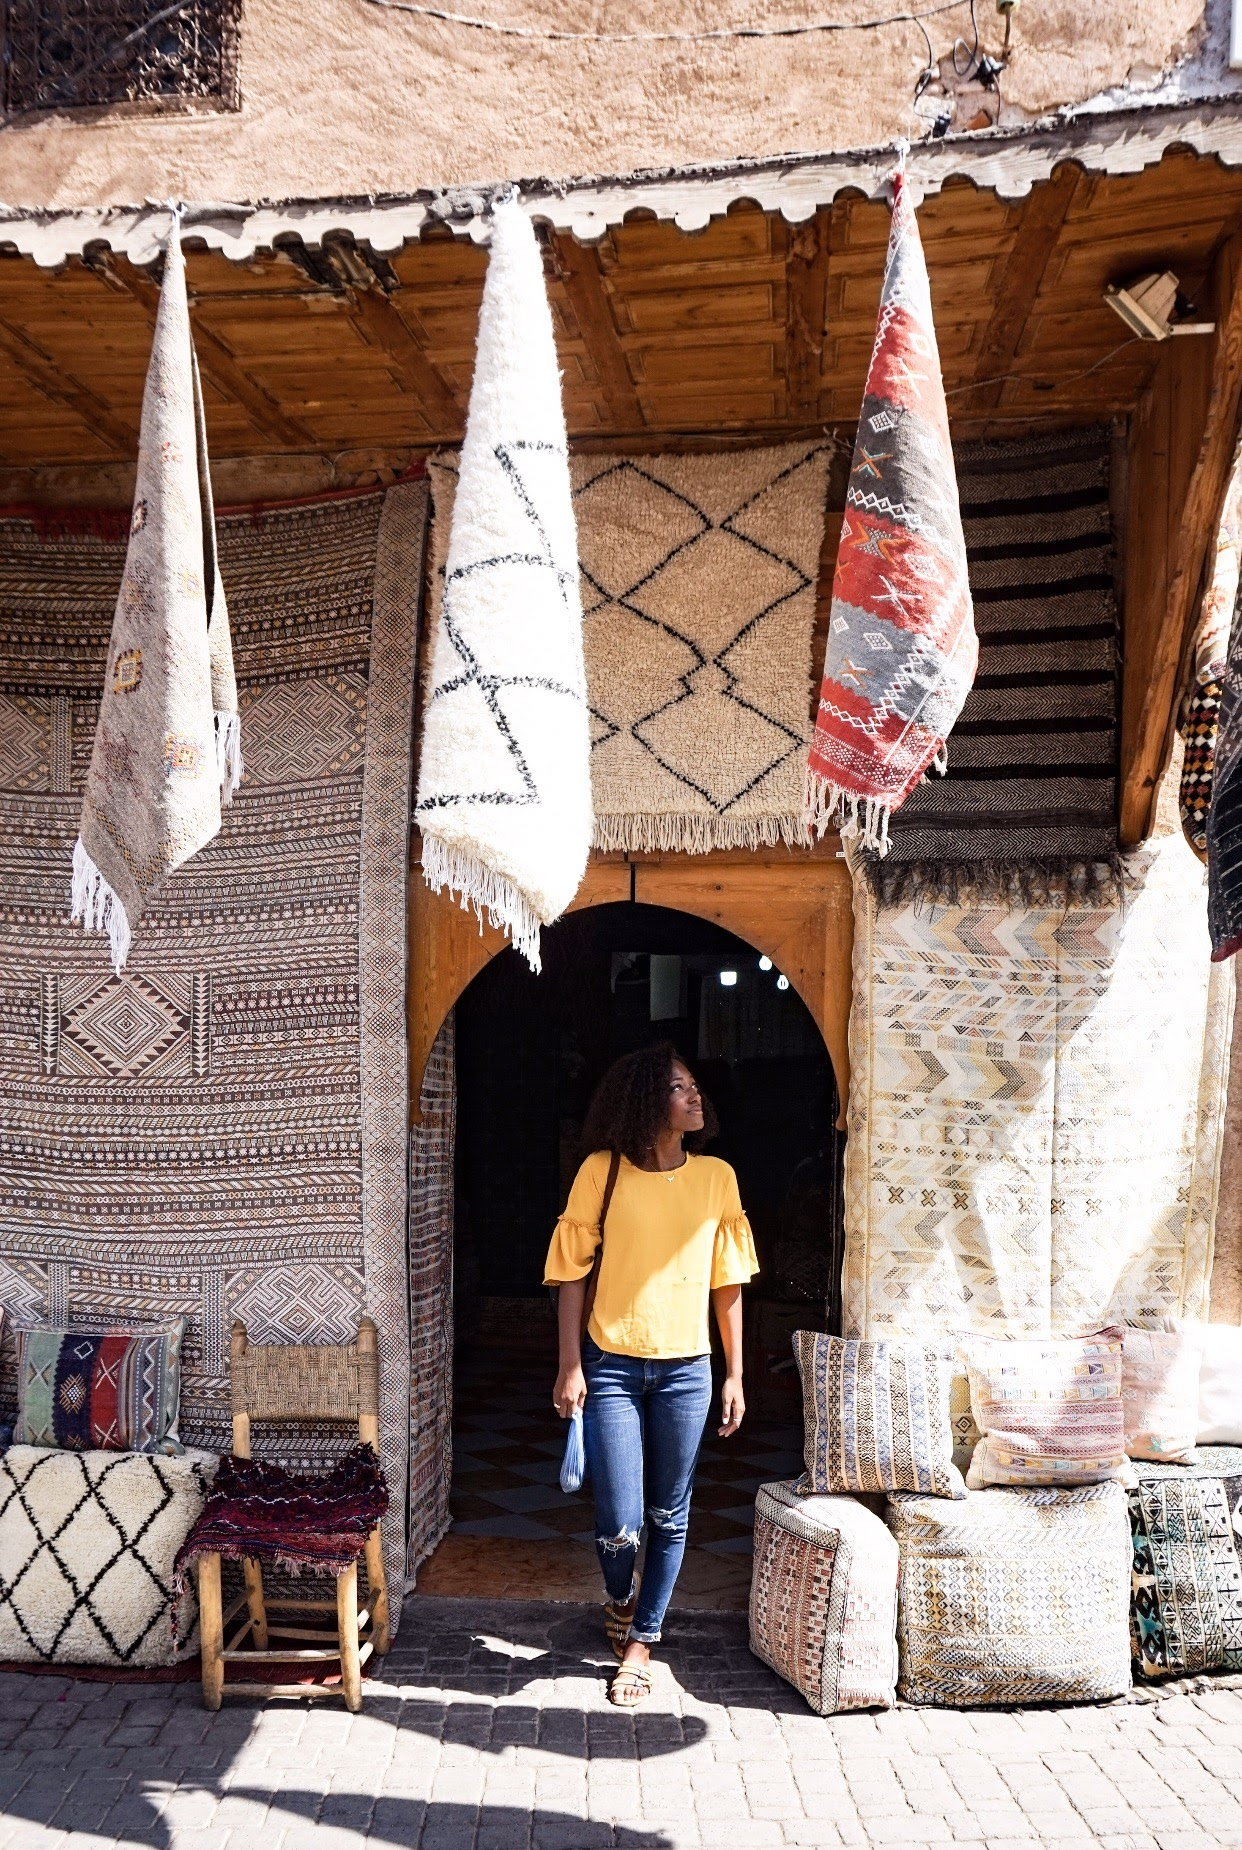 The owner of this rug store in Marrakesh, Morocco actually offered to take this photo of me. I was really grateful!